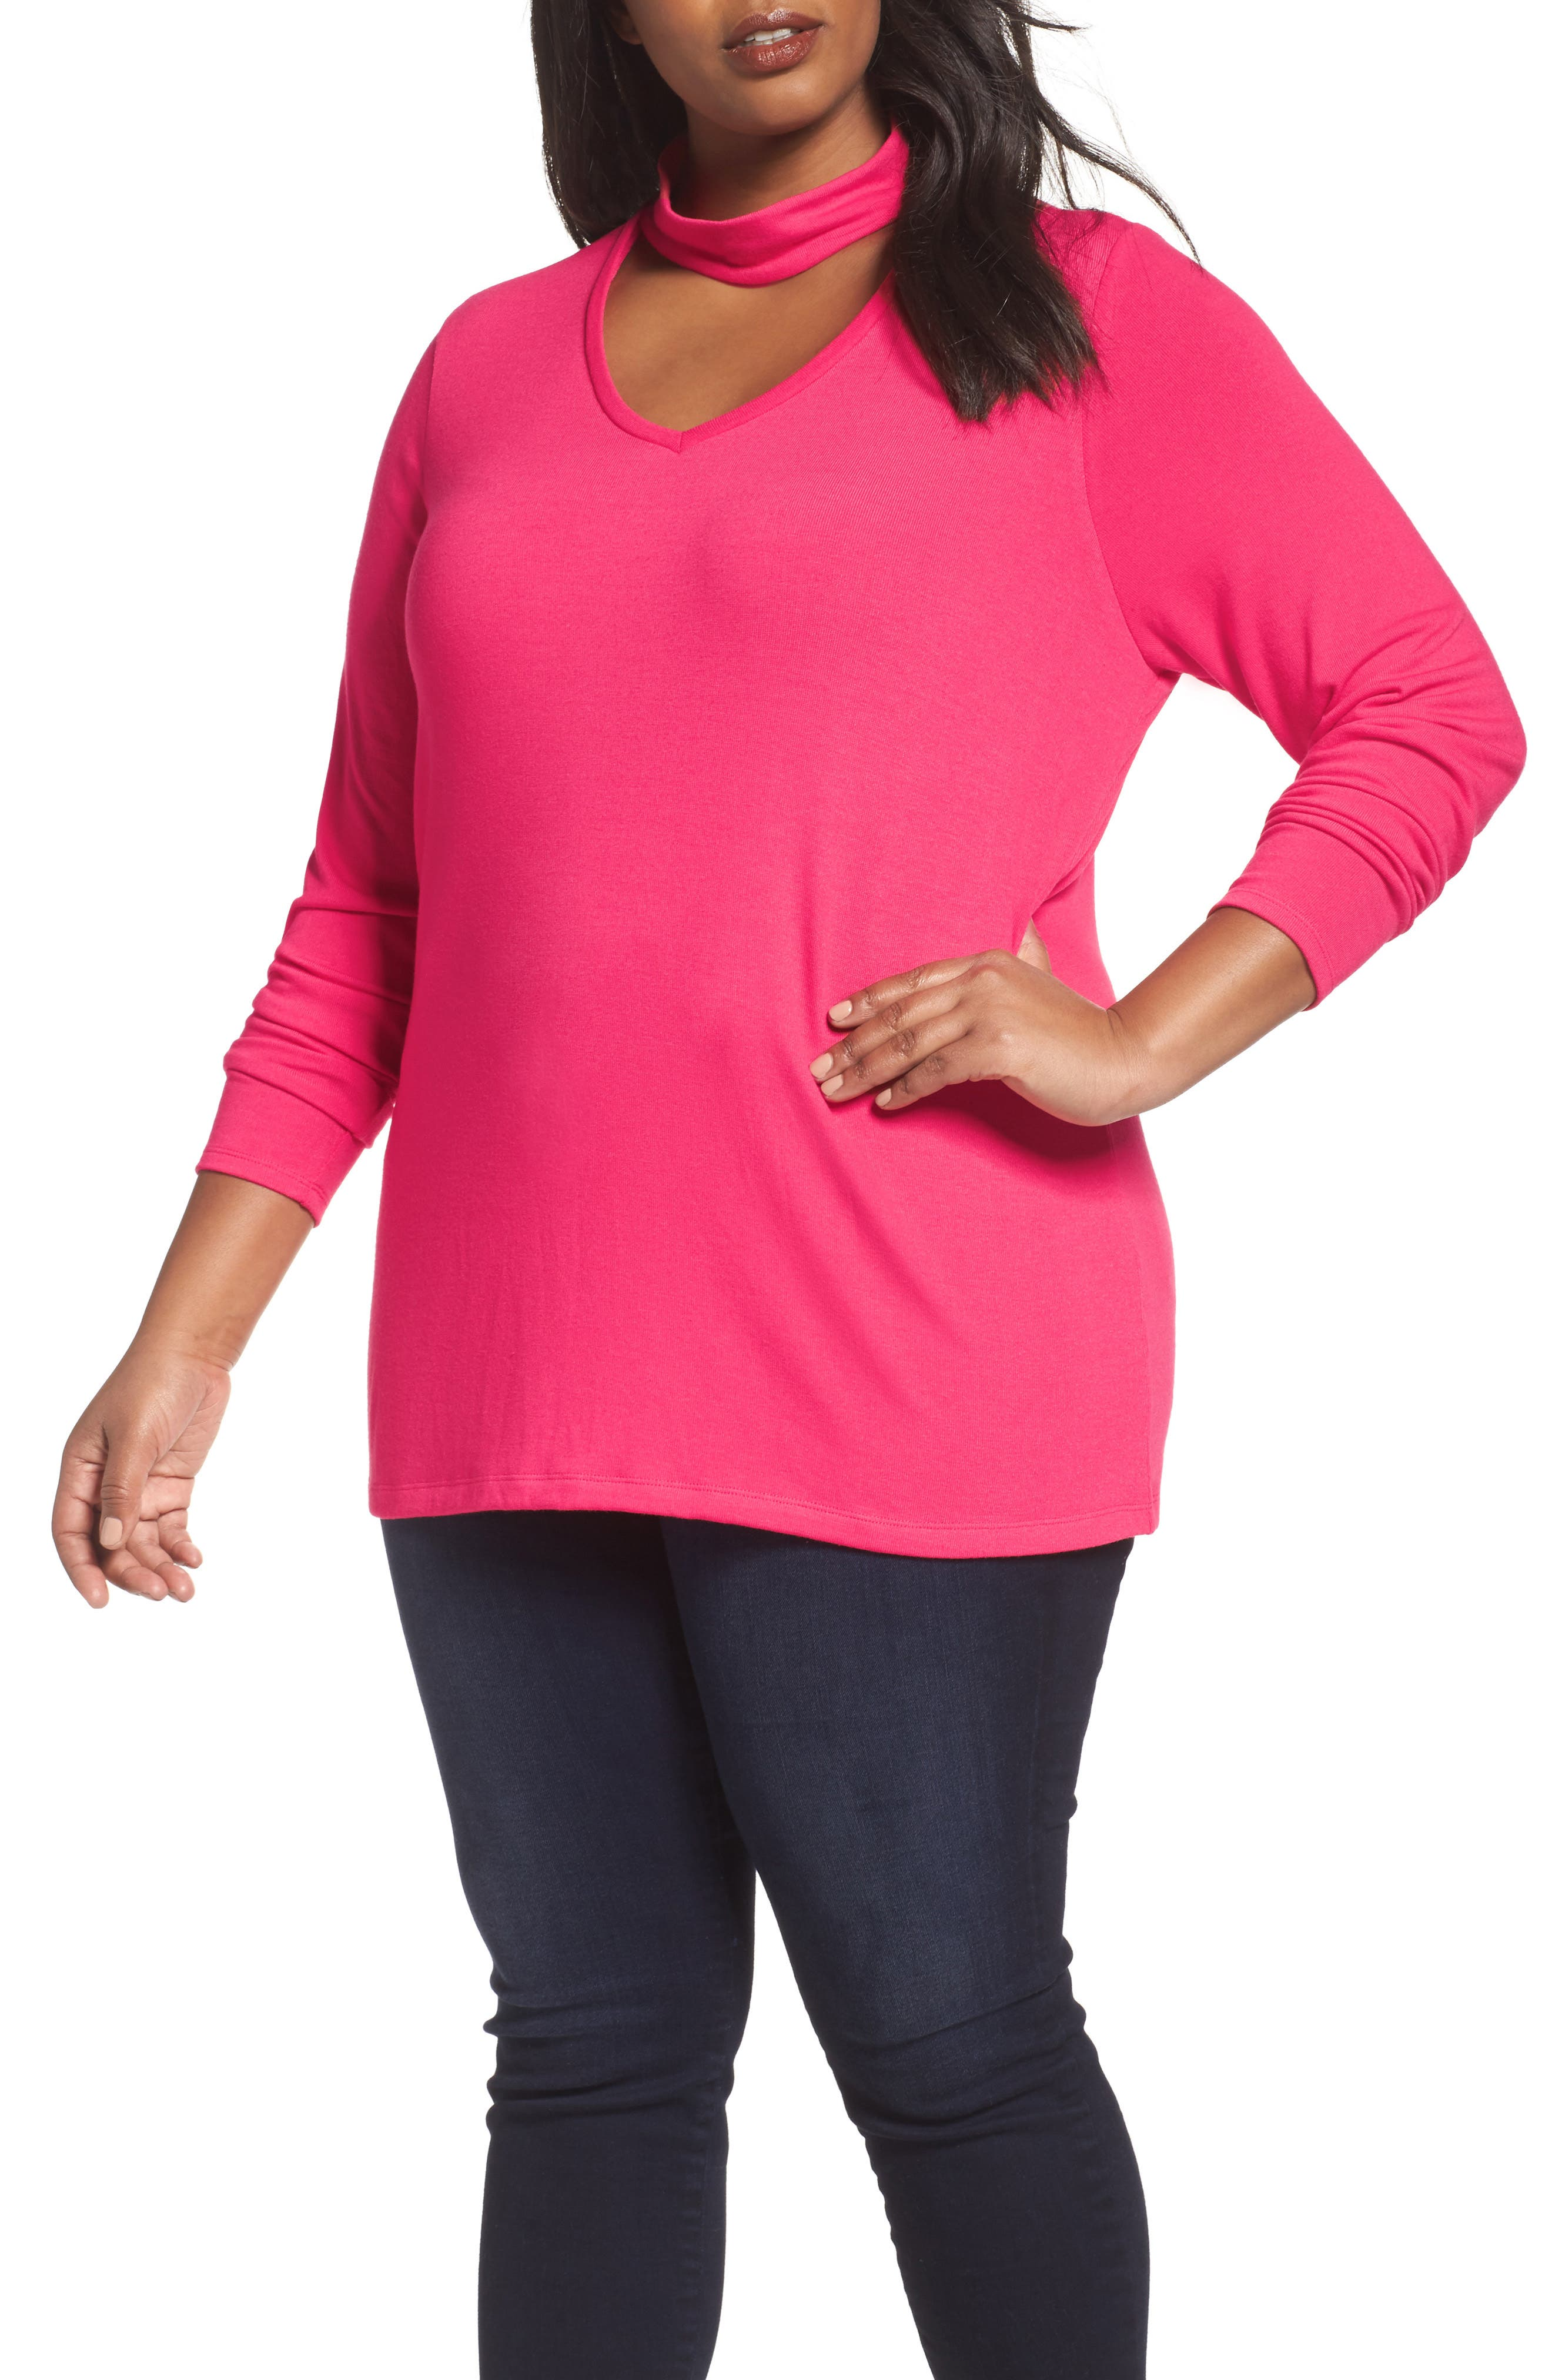 Choker Neck Top,                         Main,                         color, Pink Bright